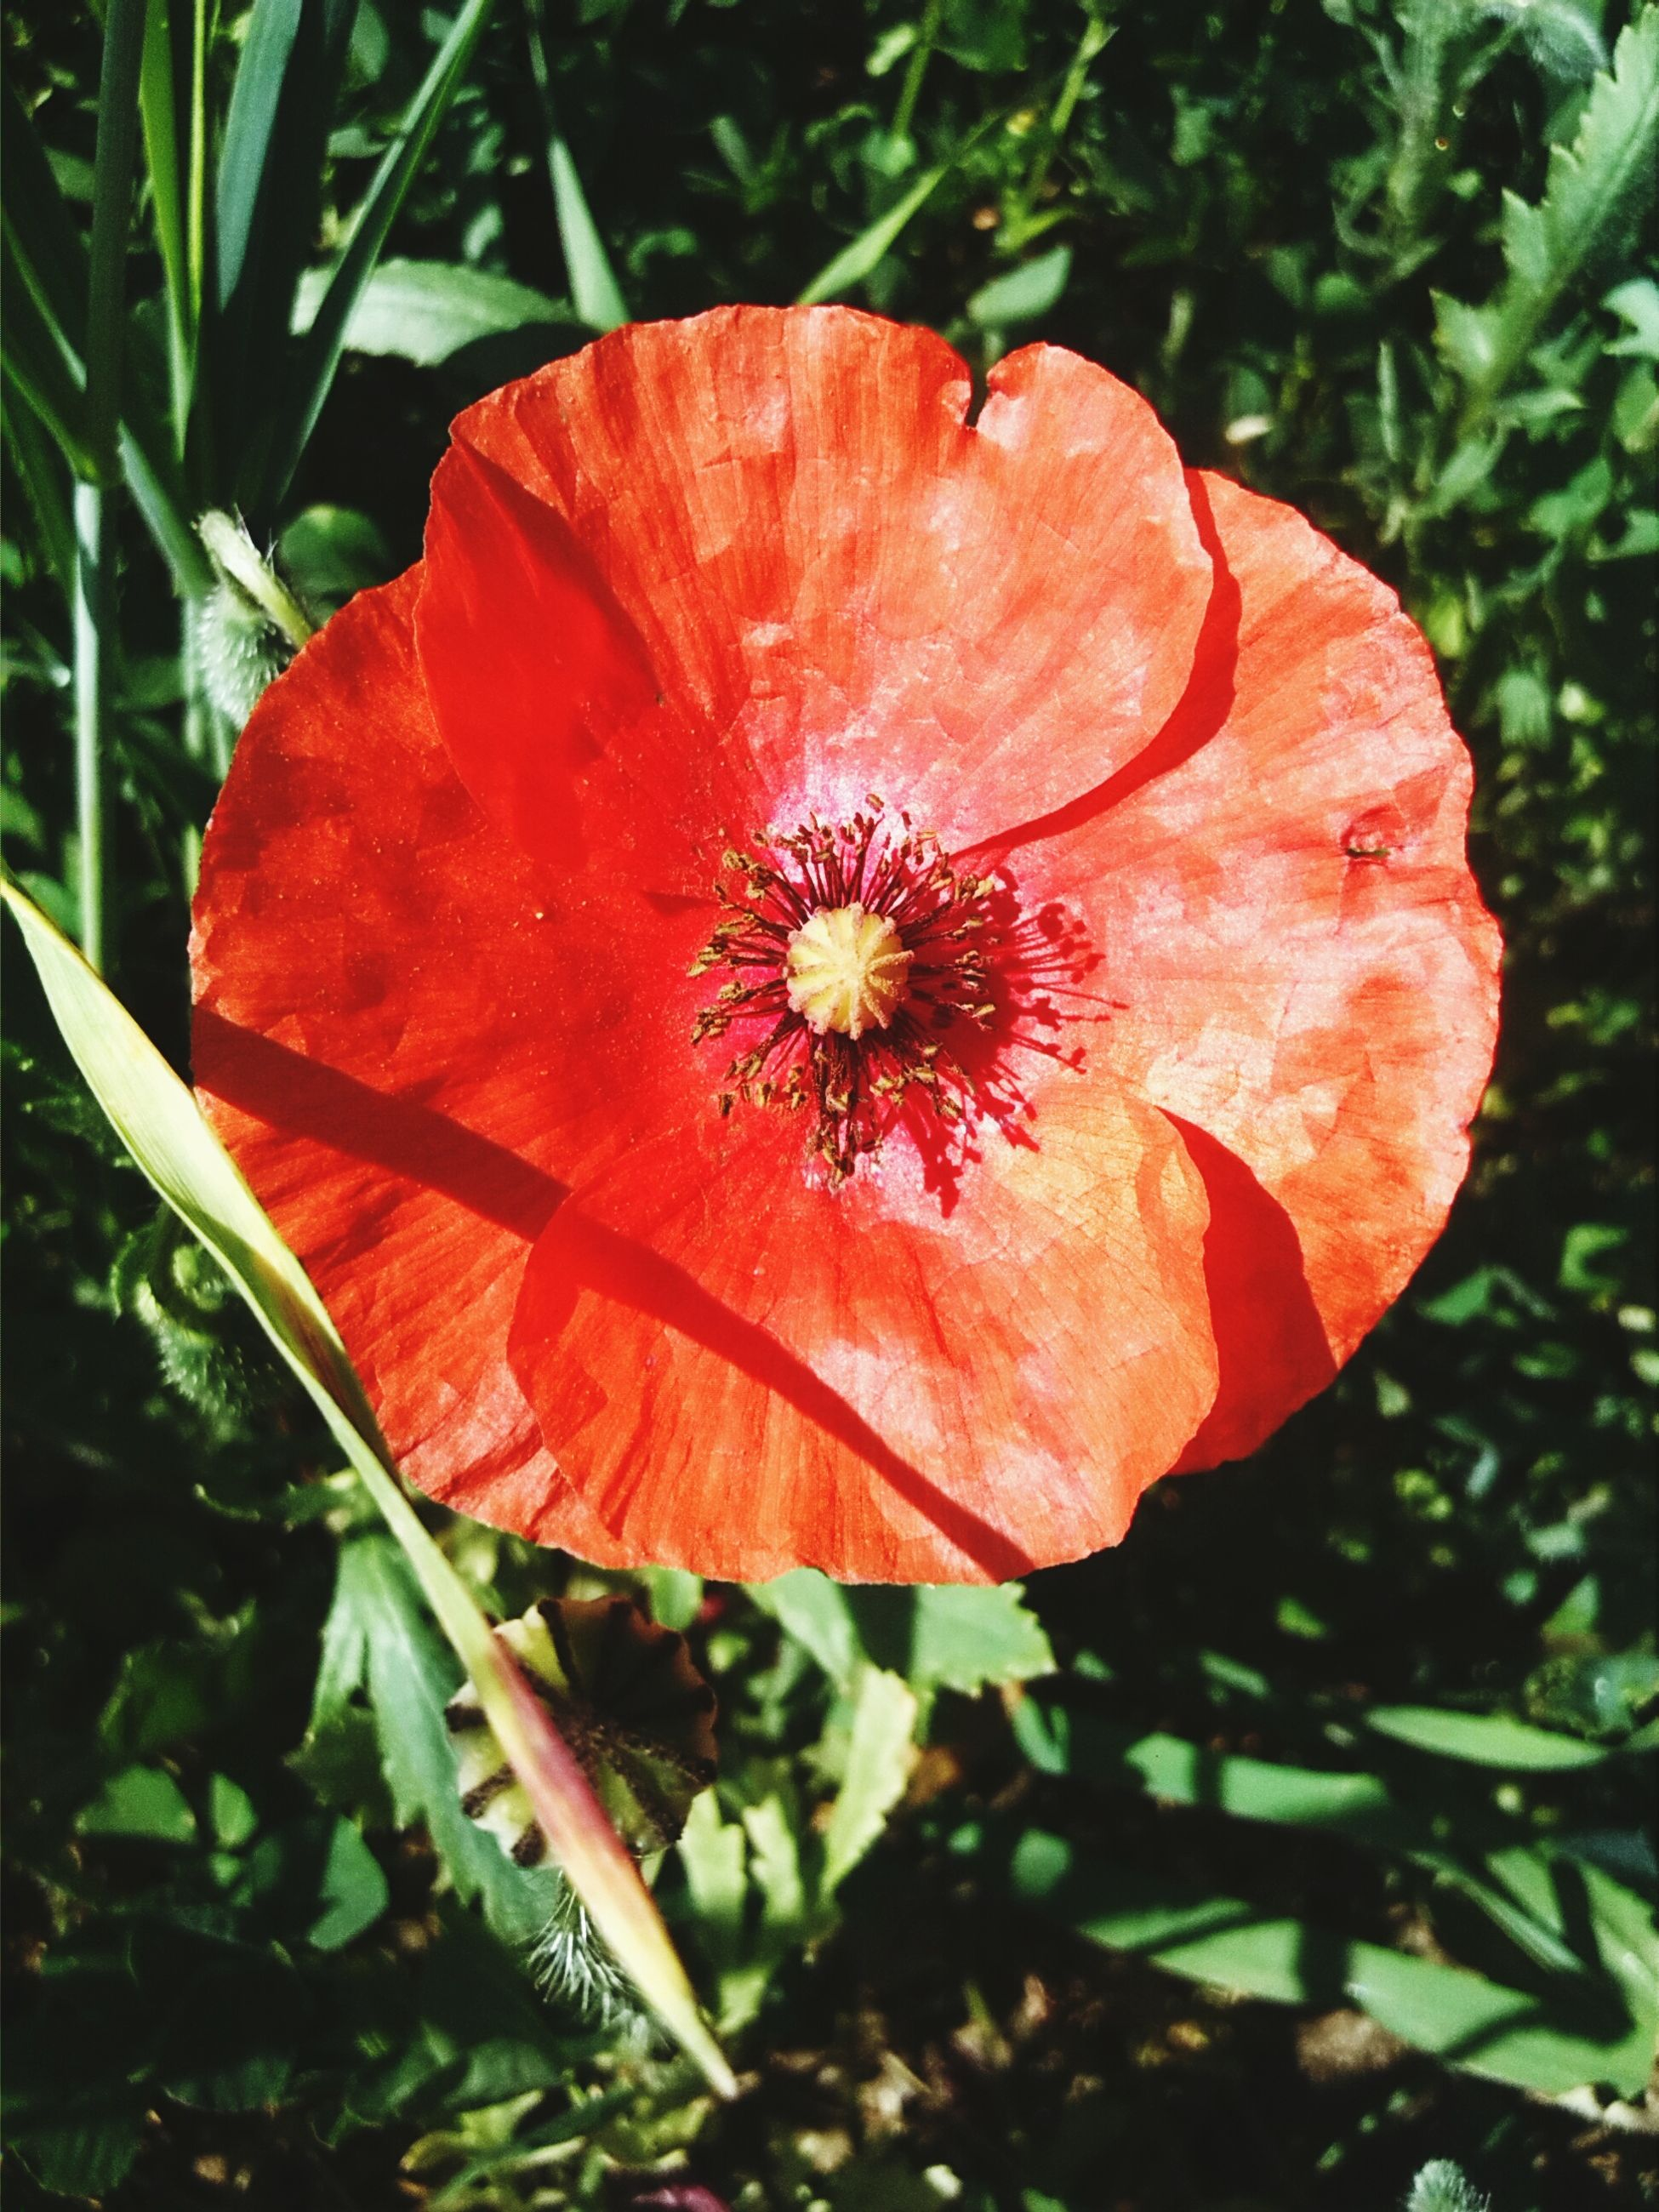 flower, freshness, petal, flower head, fragility, single flower, growth, red, beauty in nature, stamen, close-up, pollen, nature, hibiscus, plant, blooming, orange color, poppy, in bloom, high angle view